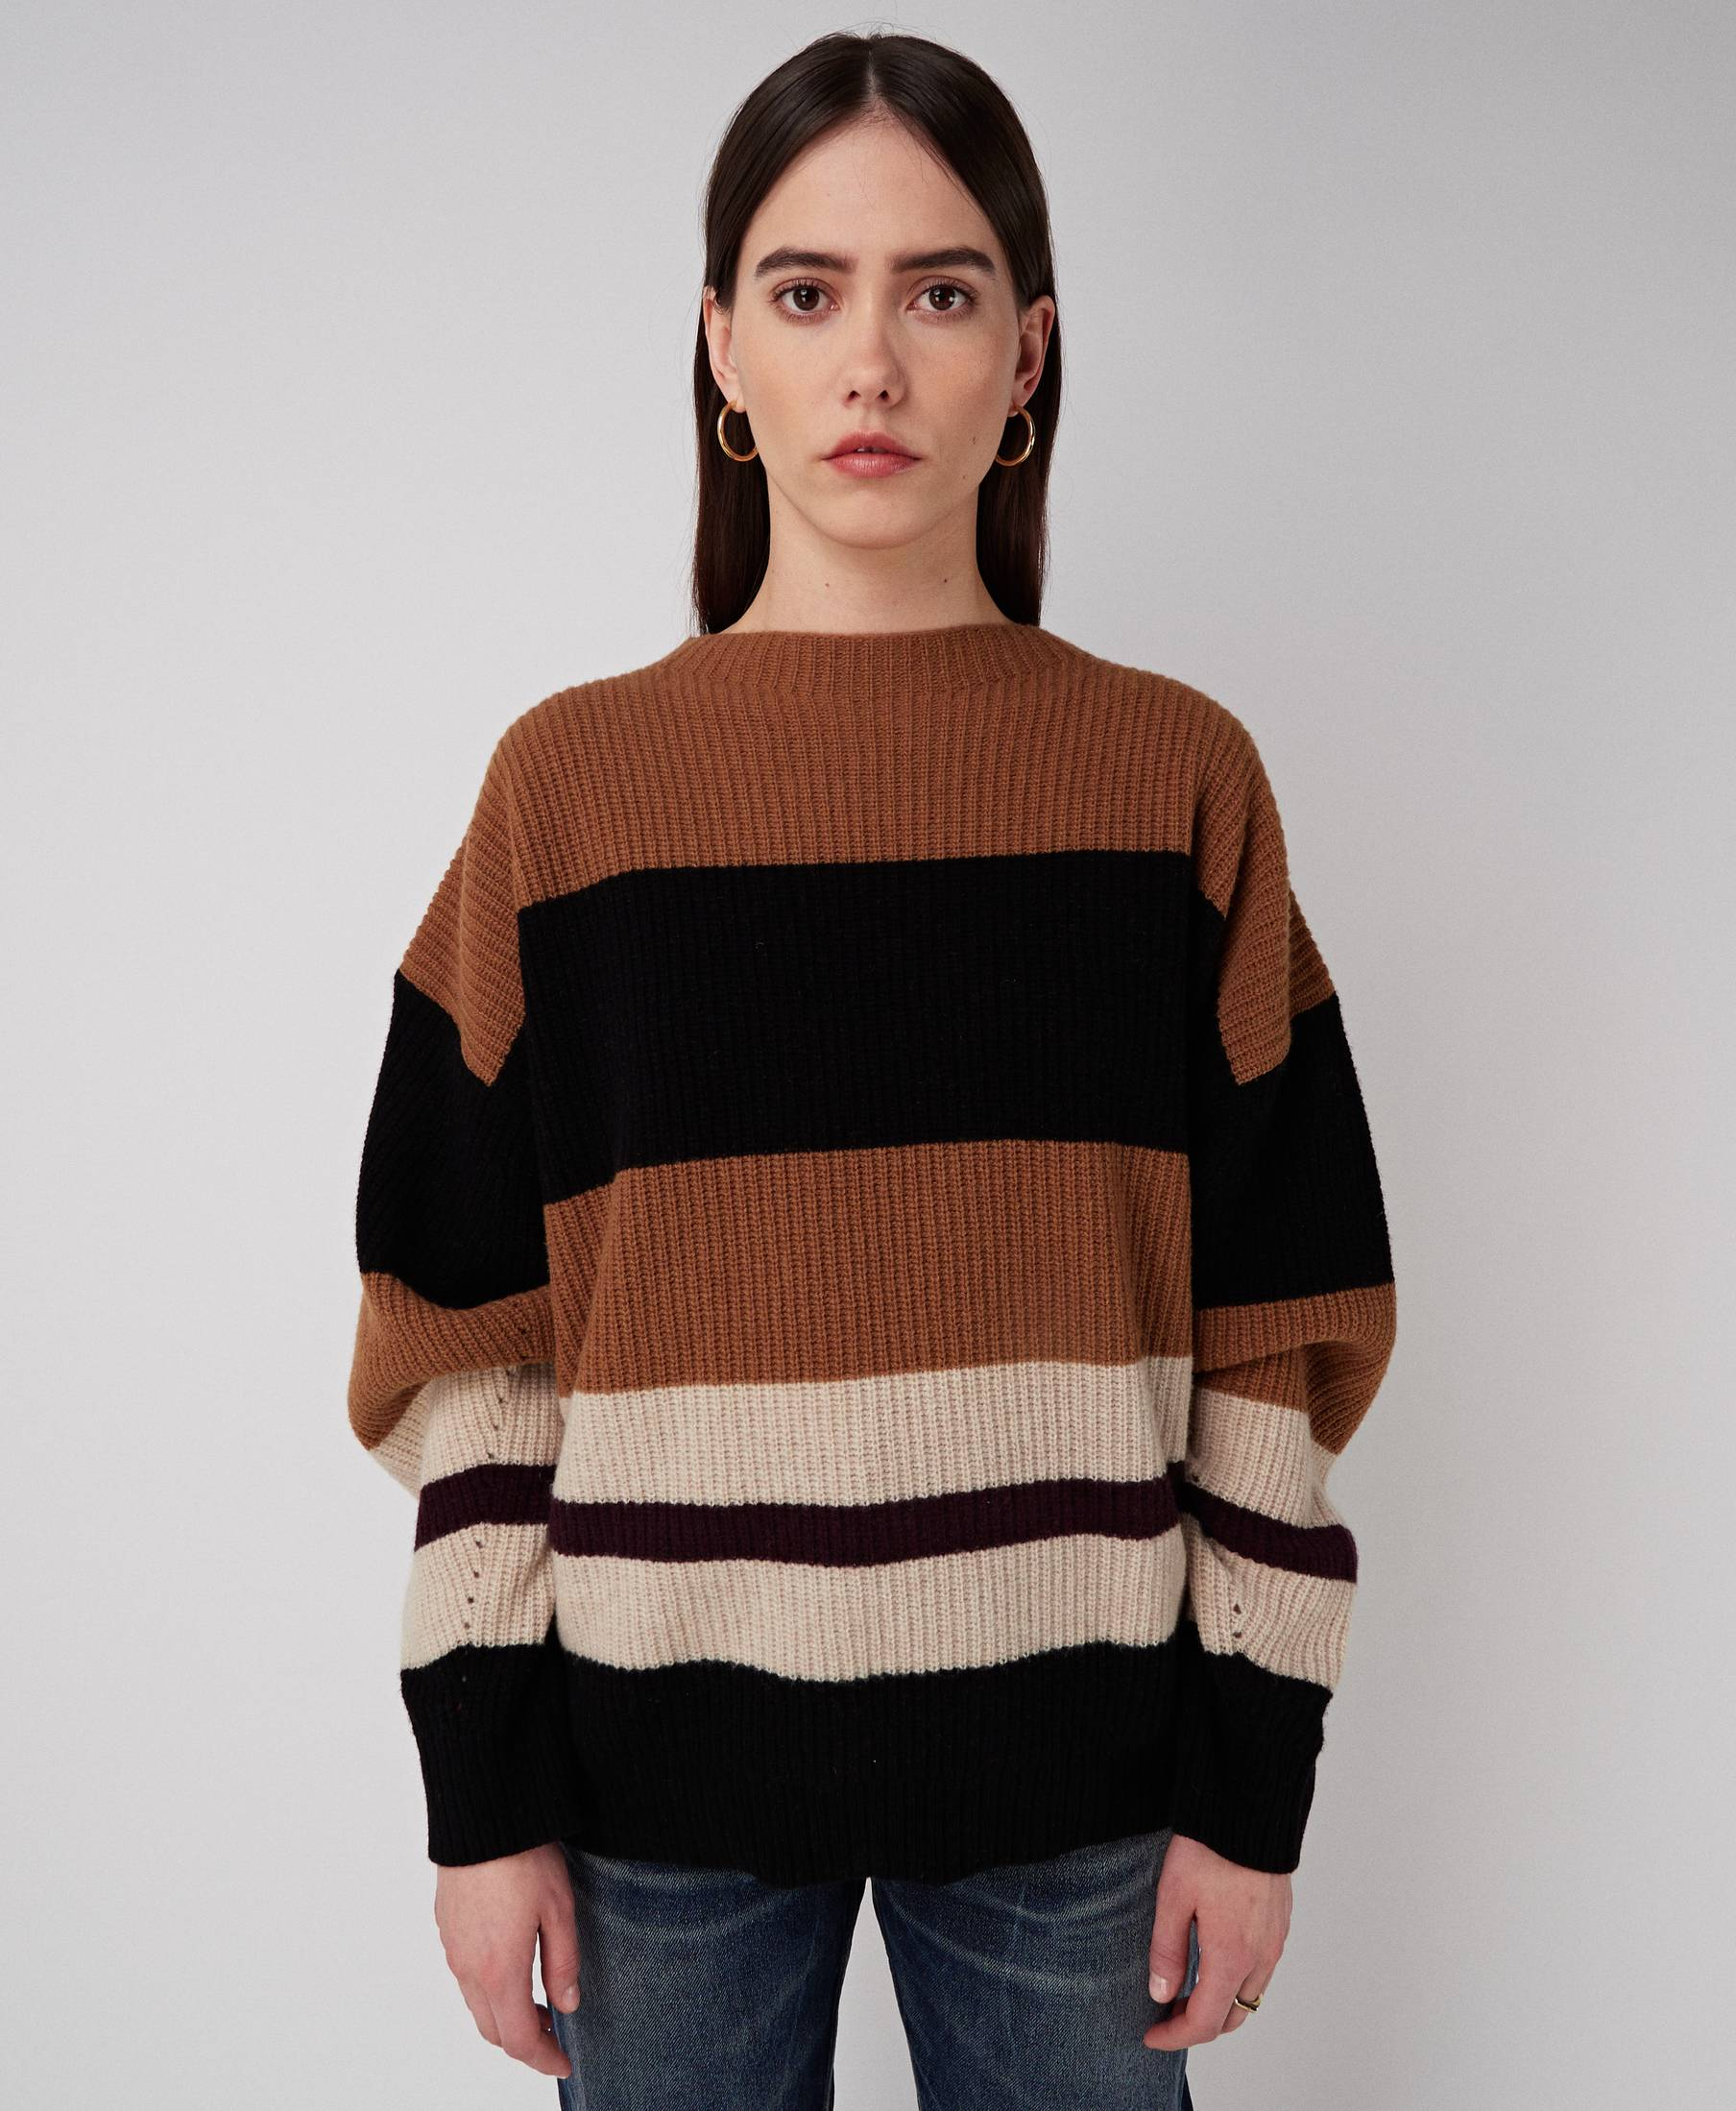 Kara Oversized Sweater Knitted Stripes